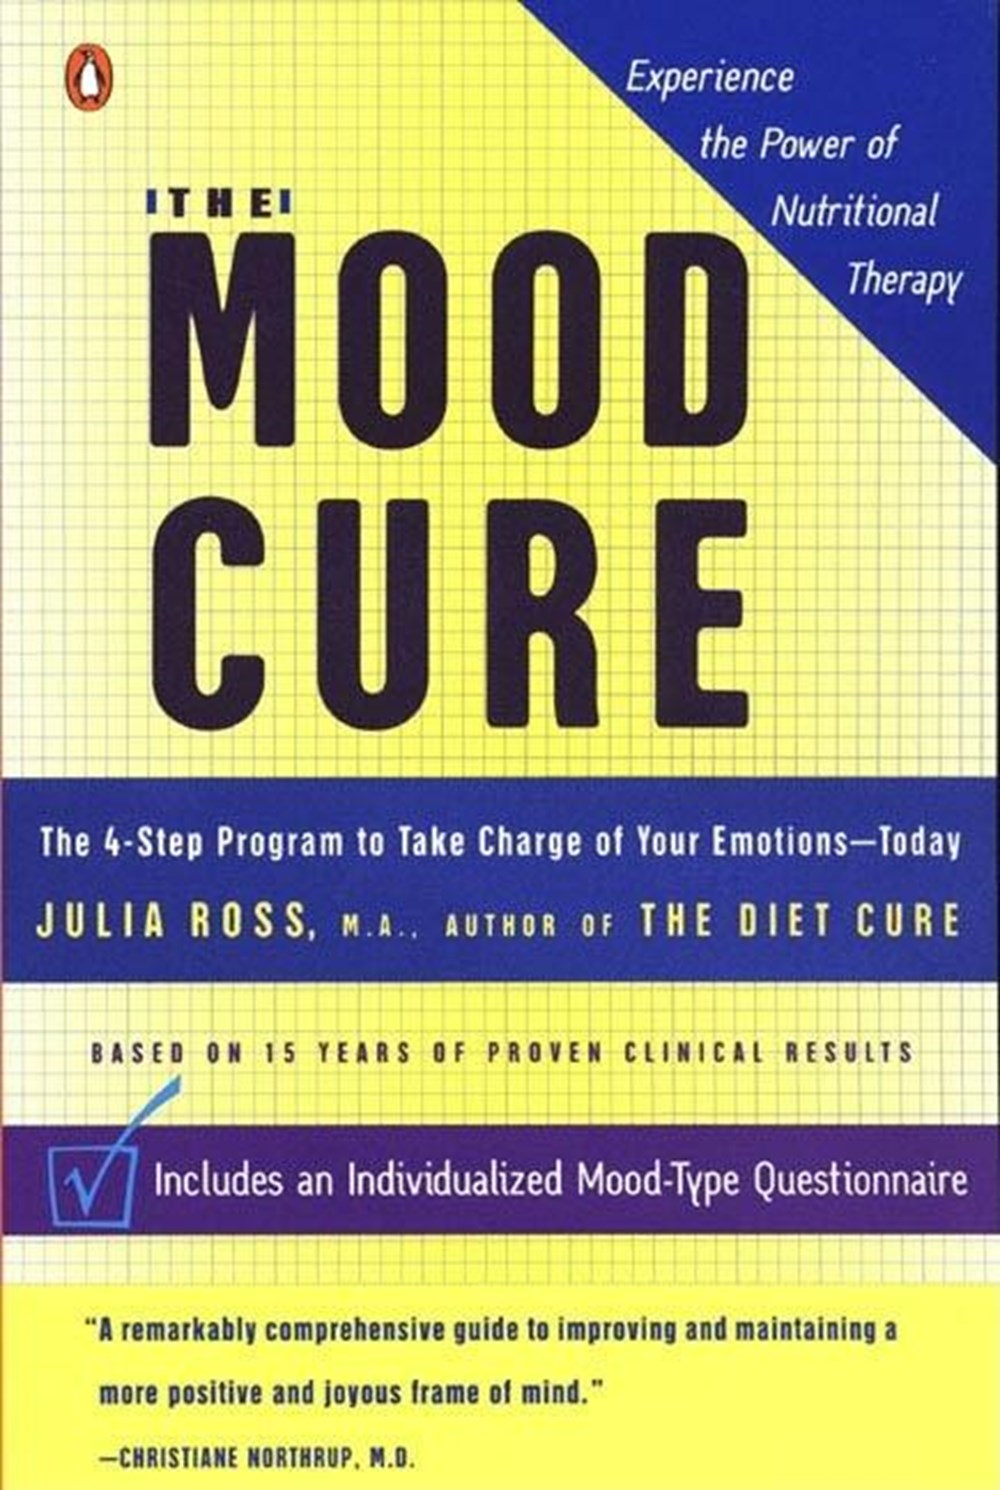 Mood Cure: The 4-Step Program to Take Charge of Your Emotions--Today